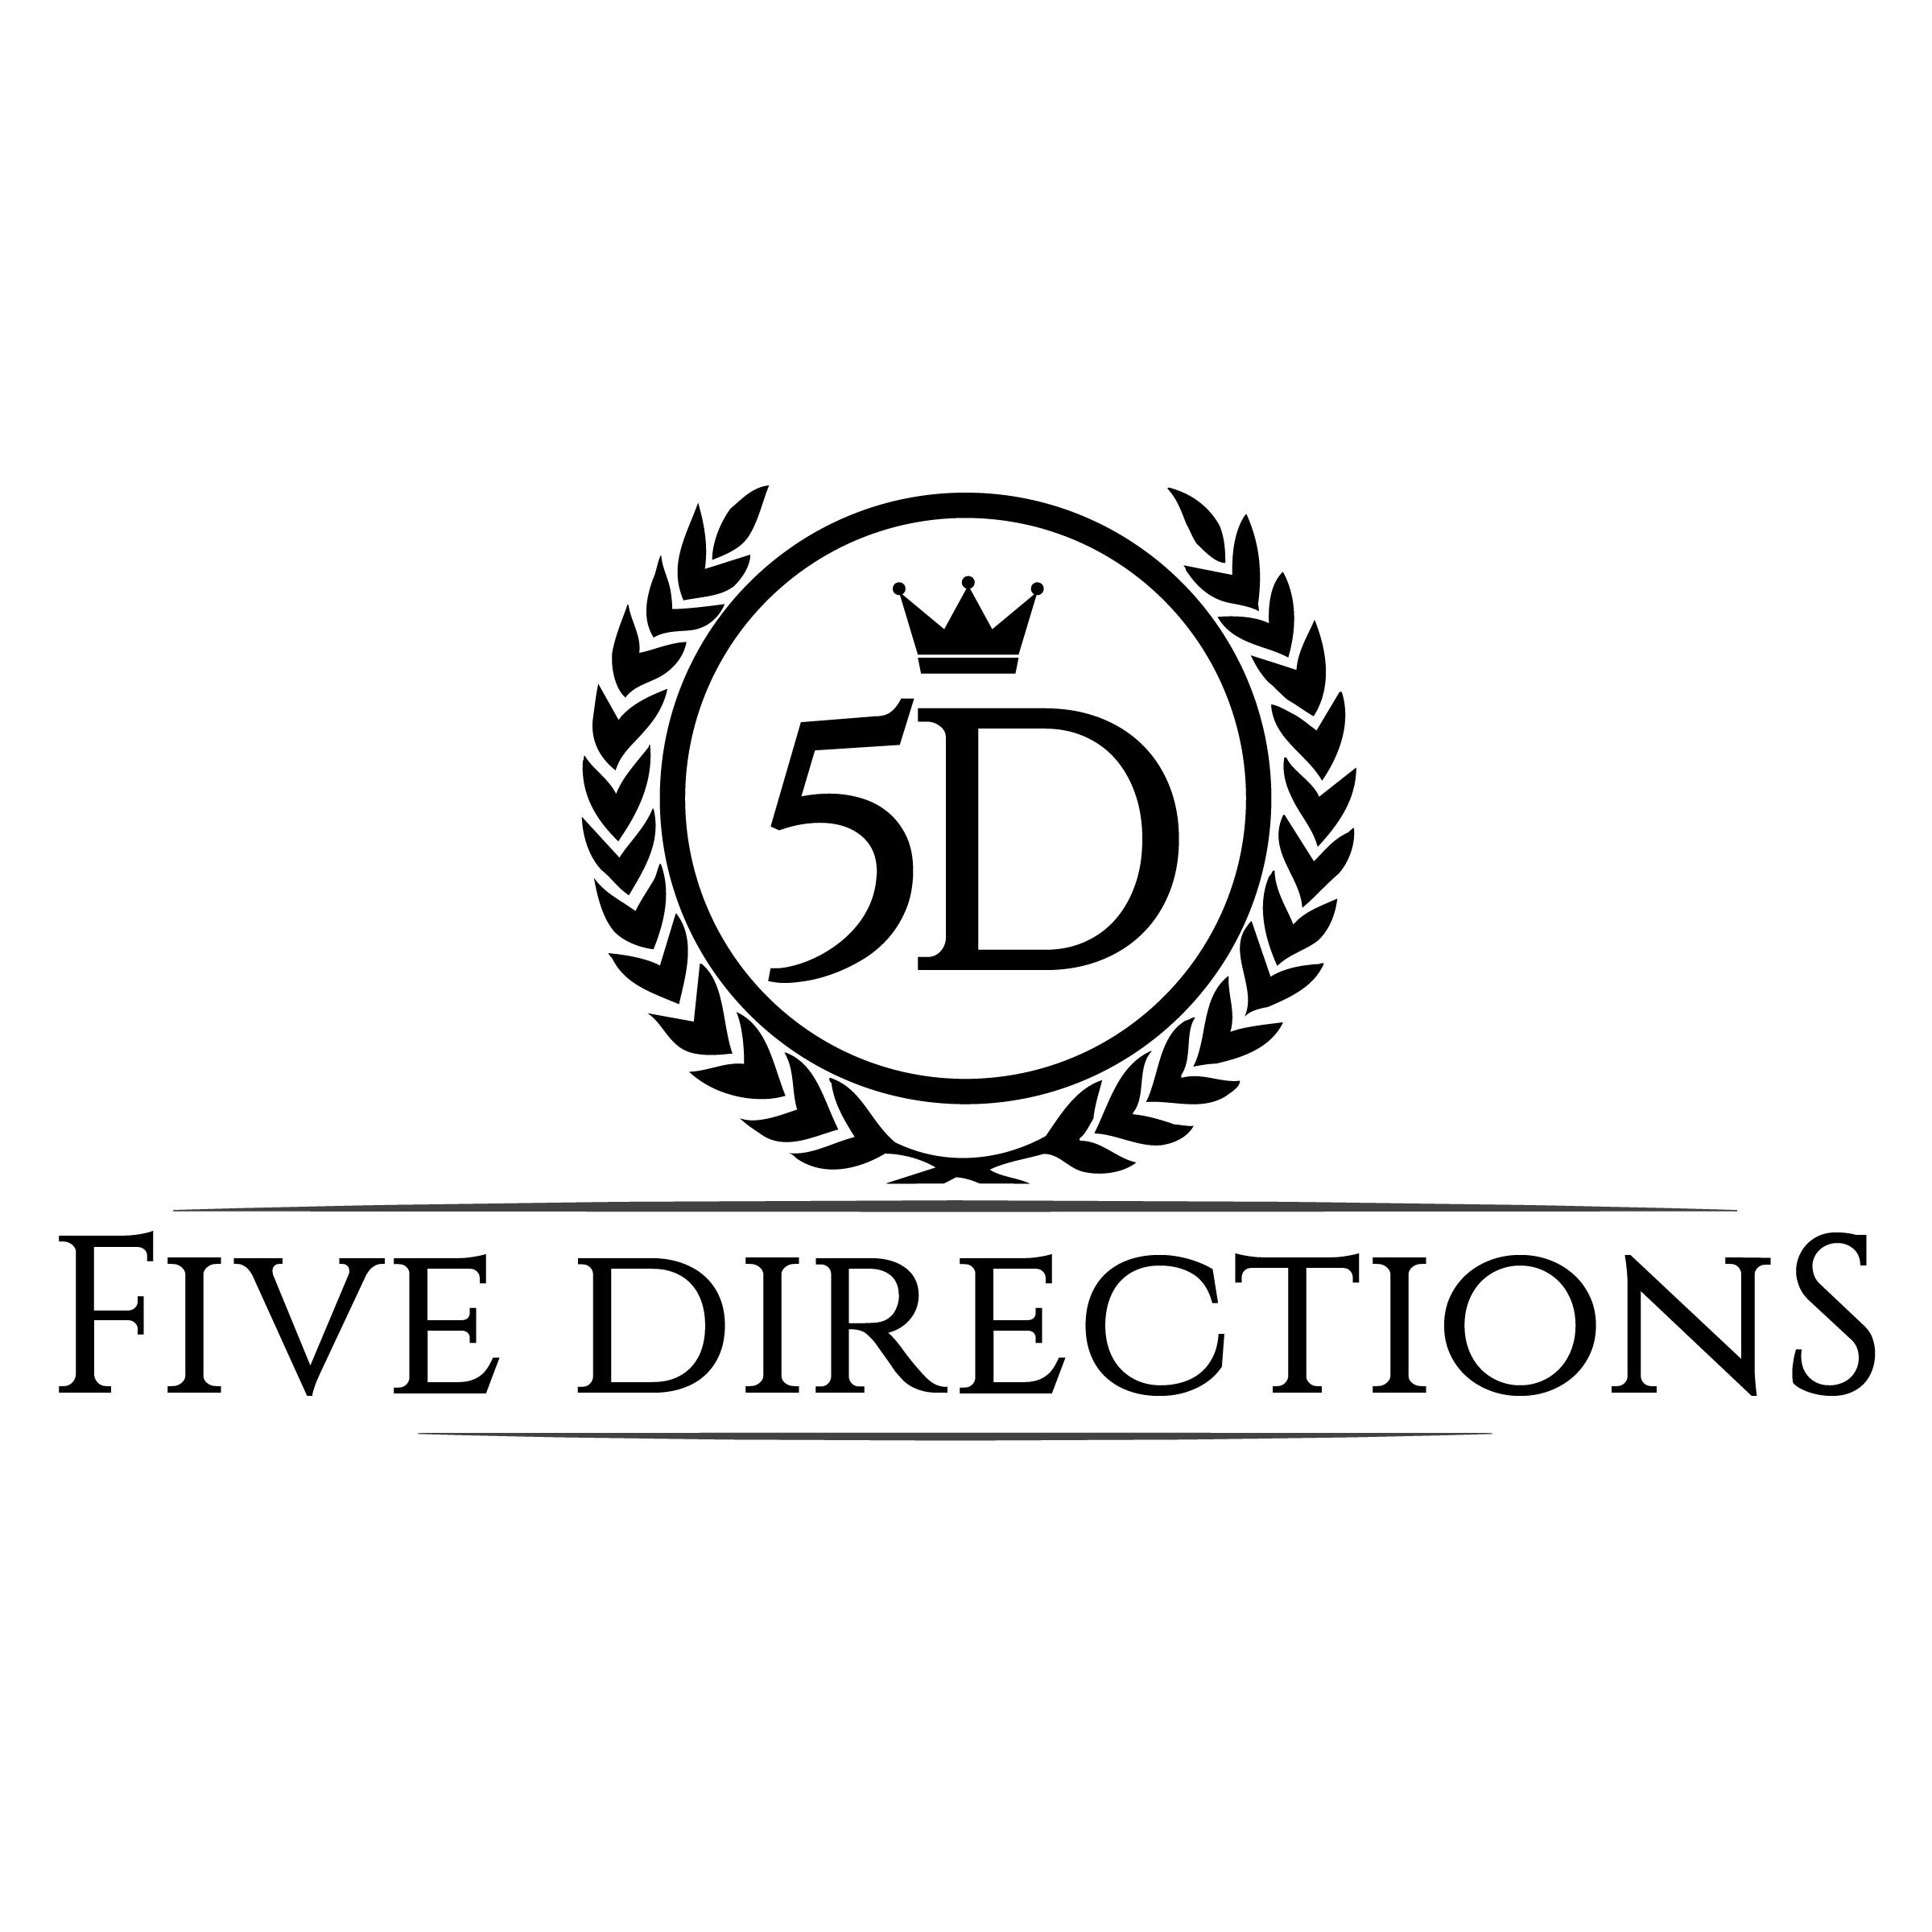 info@fivedirections.se